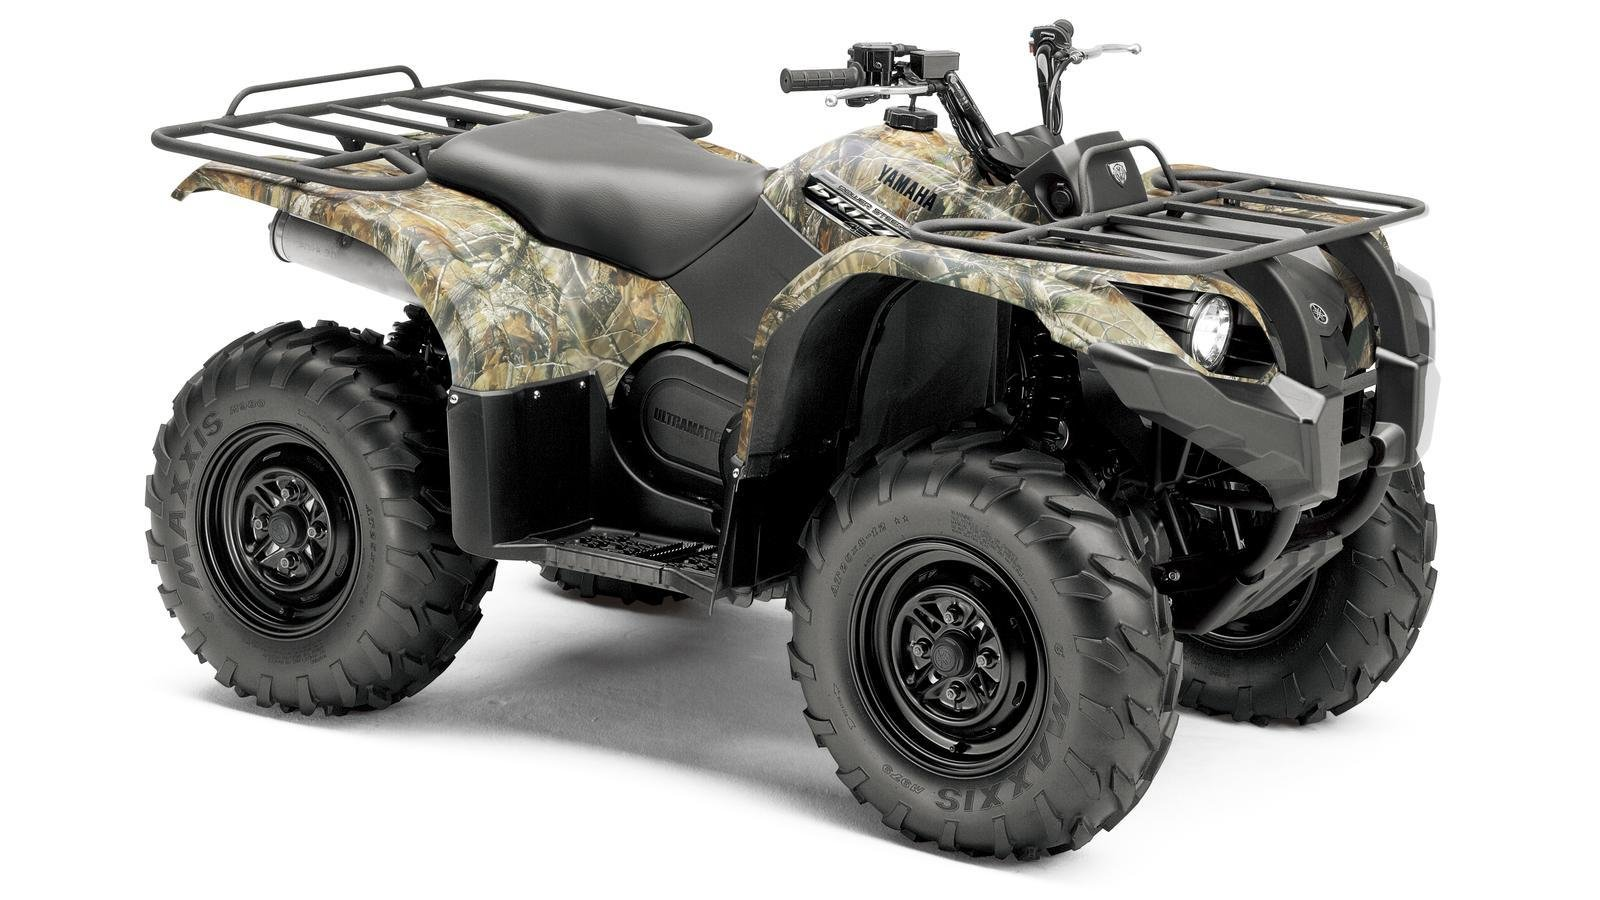 2013 Yamaha Grizzly 450 Eps Review Top Speed